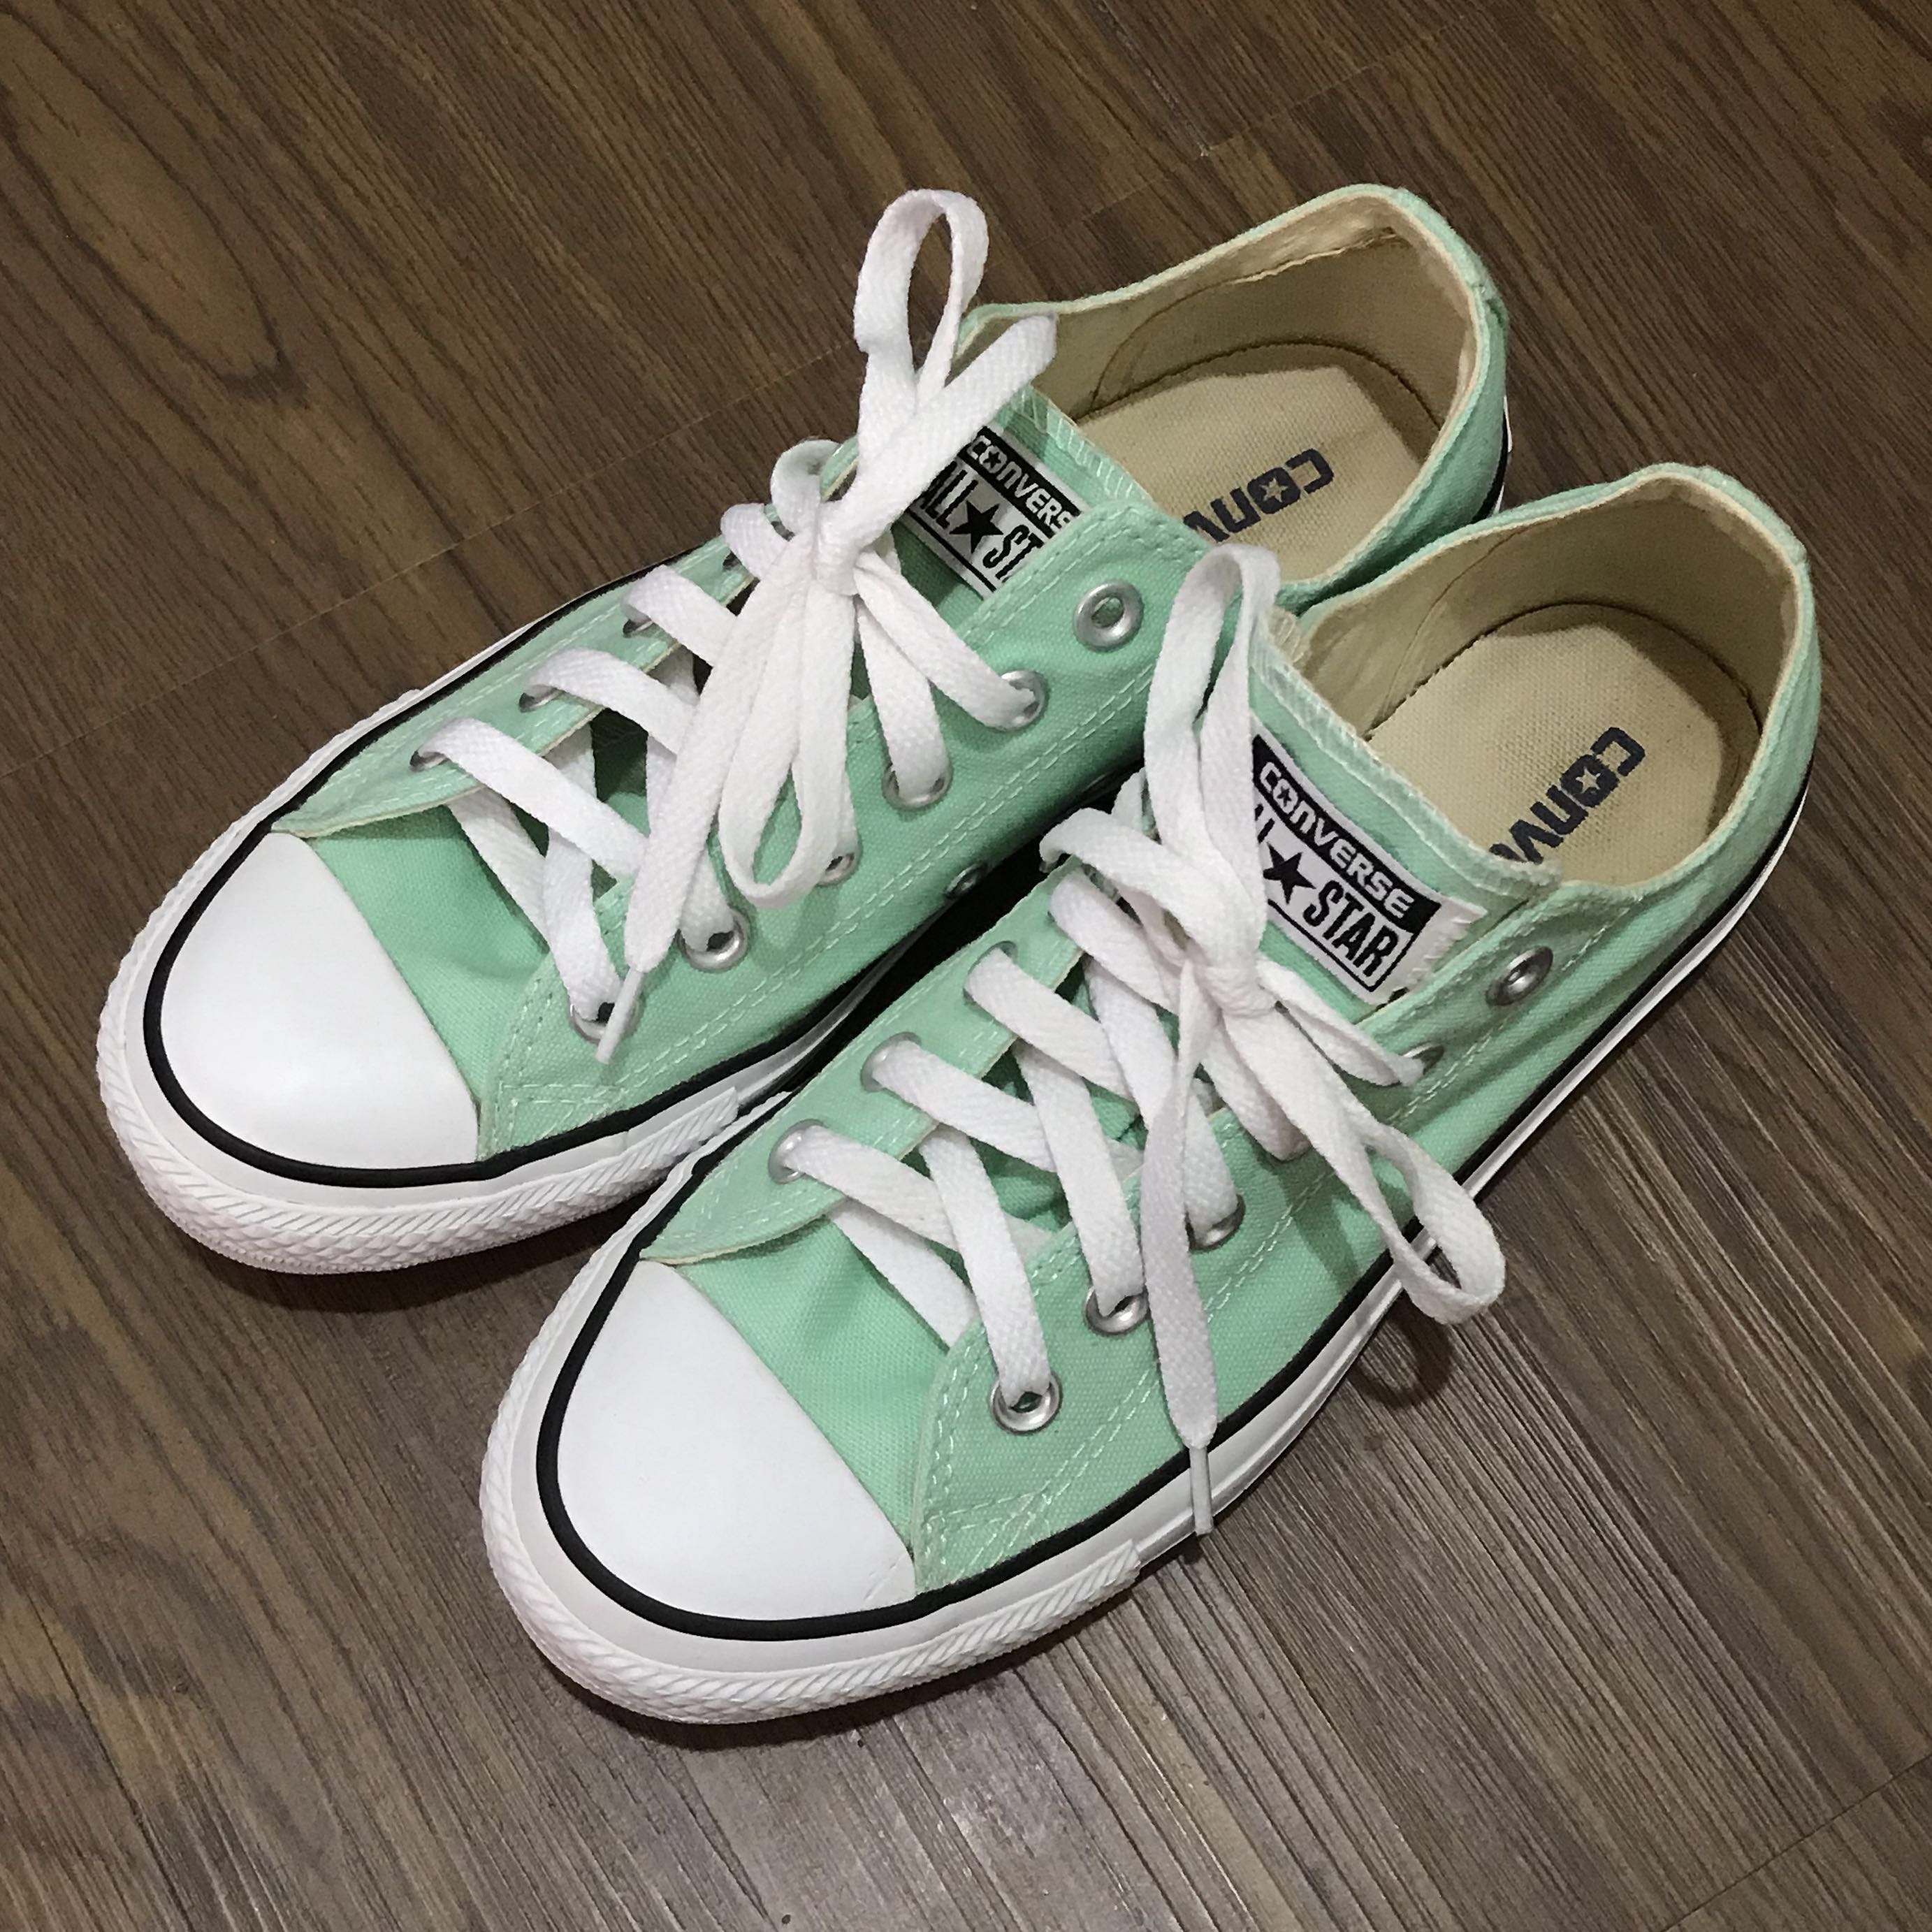 a7aecde3f281 Authentic Green Tosca Converse Sneakers